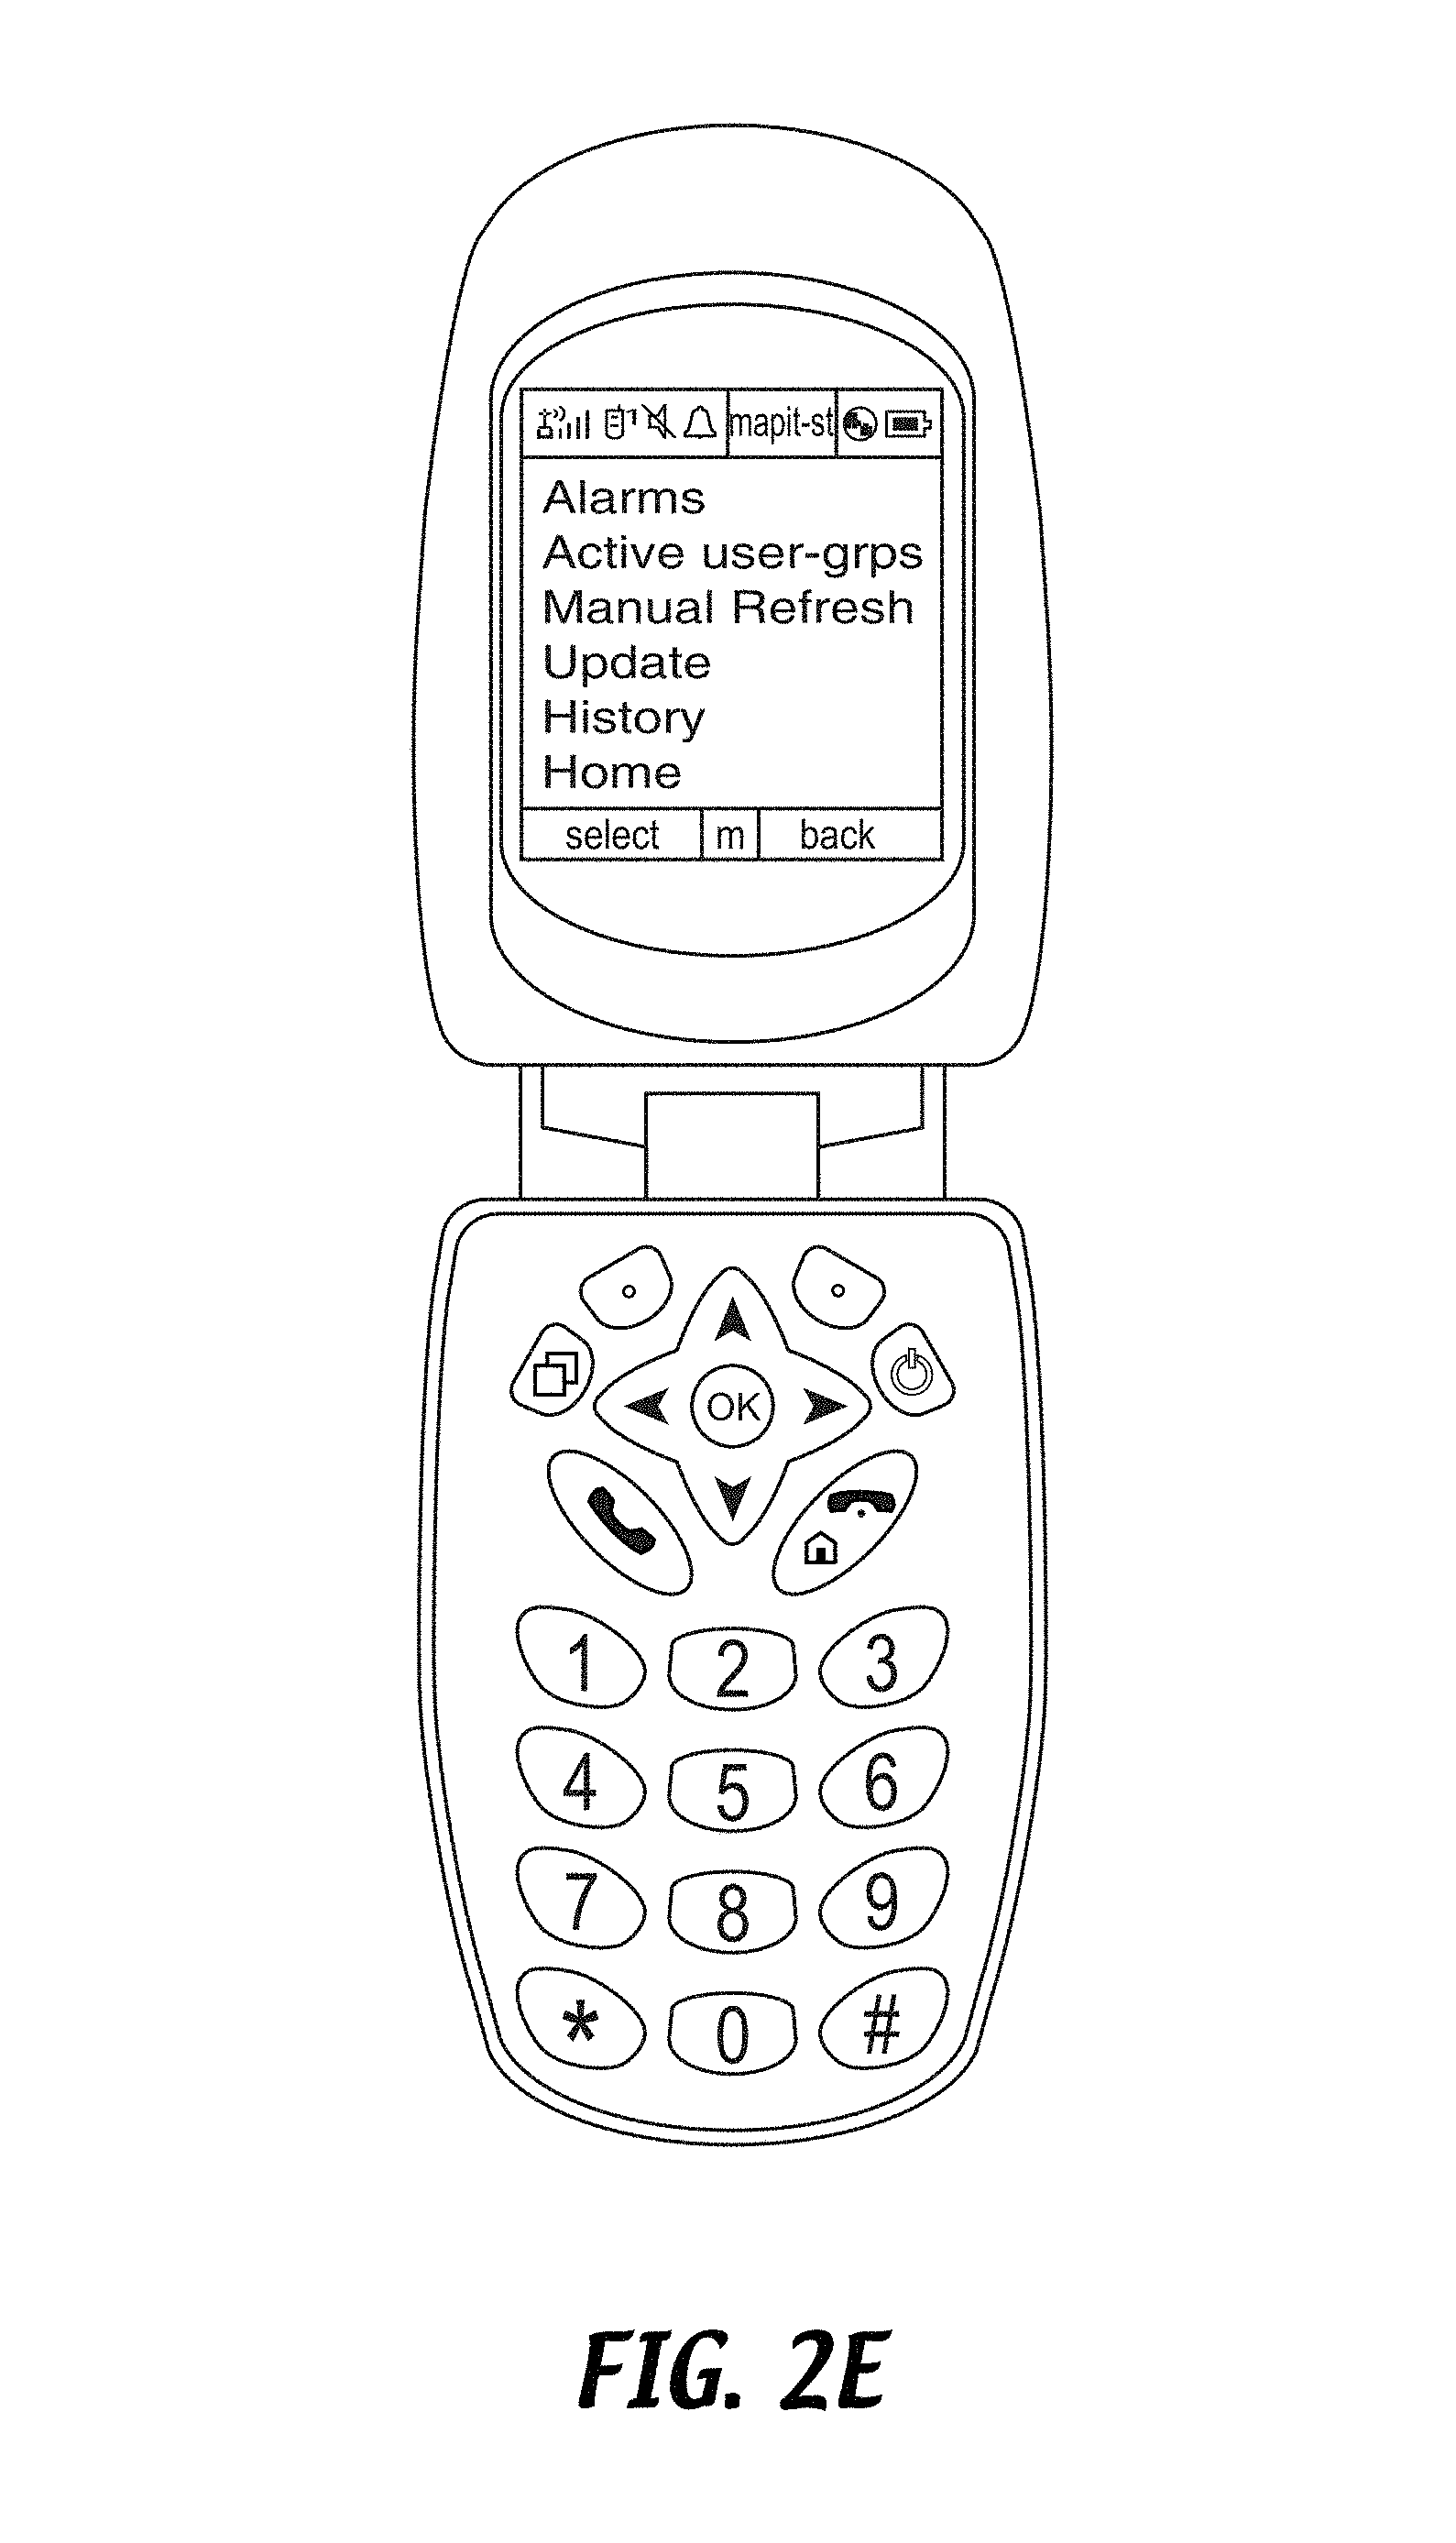 Us9749790b1 rendez vous management using mobile phones or other us9749790b1 rendez vous management using mobile phones or other mobile devices google patents fandeluxe Images